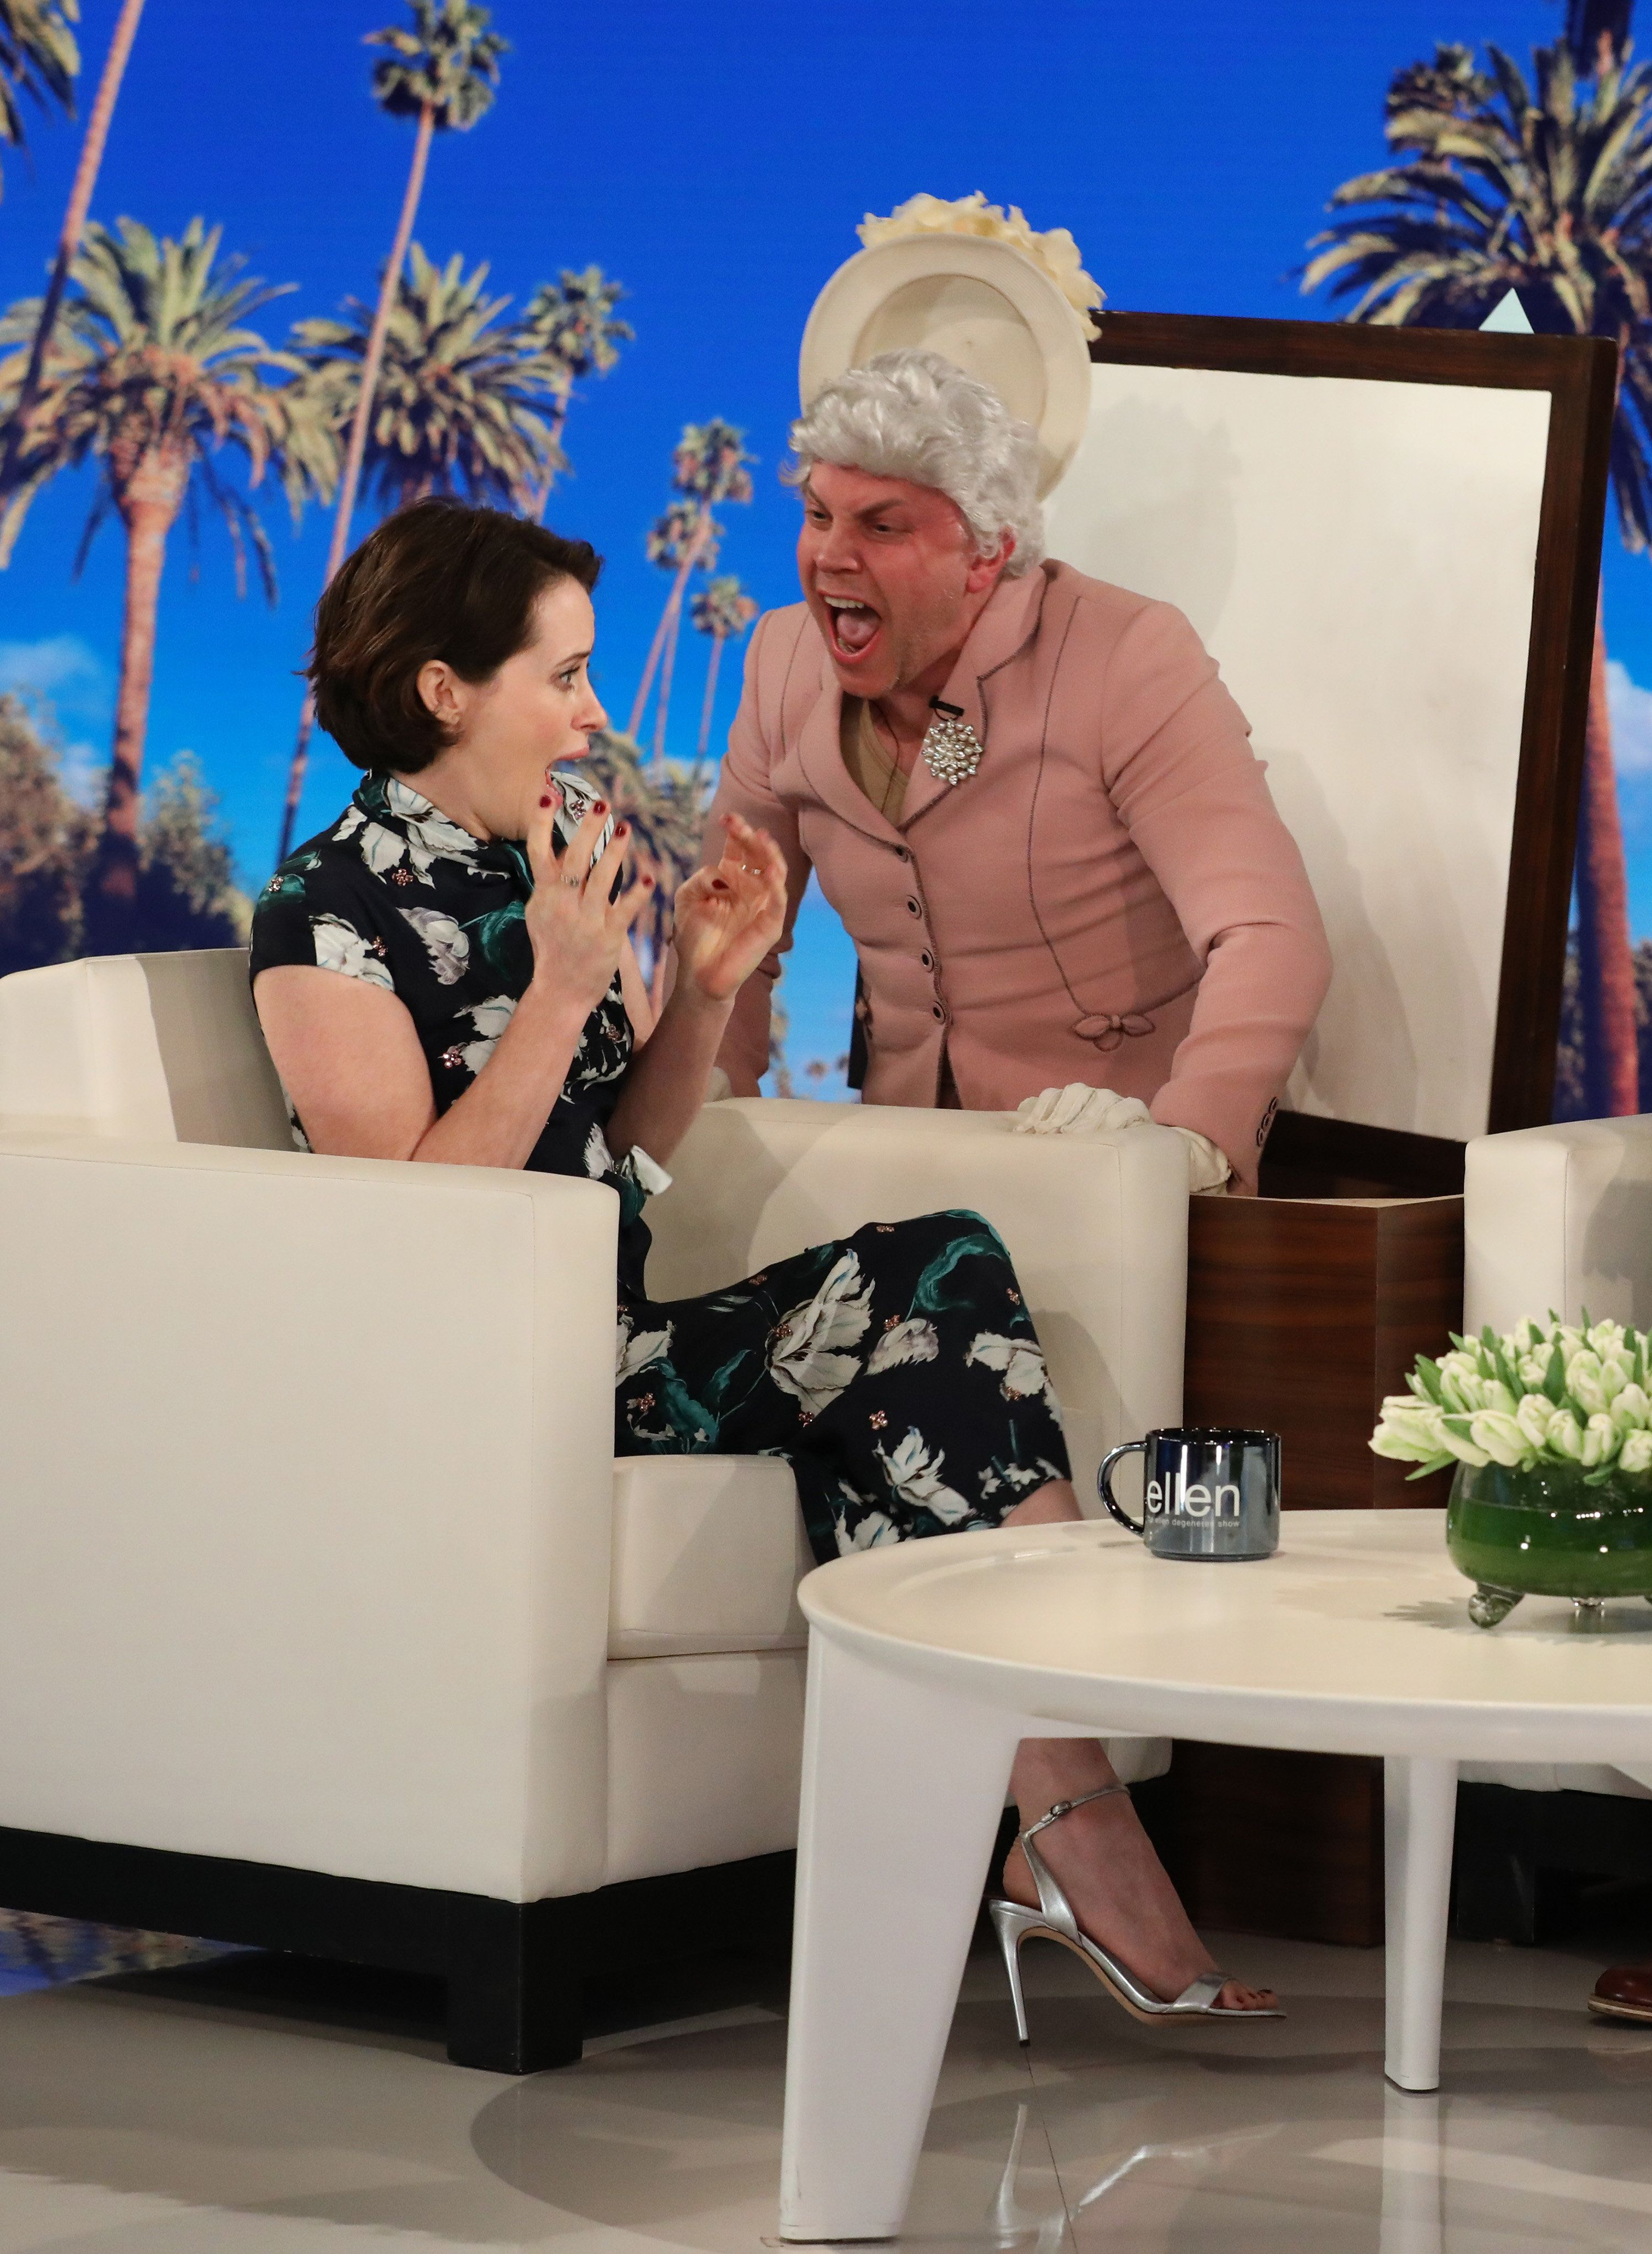 """In this photo released by Warner Bros., behind the scenes photos are taken during a shoot for """"The Ellen DeGeneres Show"""" in Los Angeles. (Photo by Michael Rozman/Warner Bros.)"""